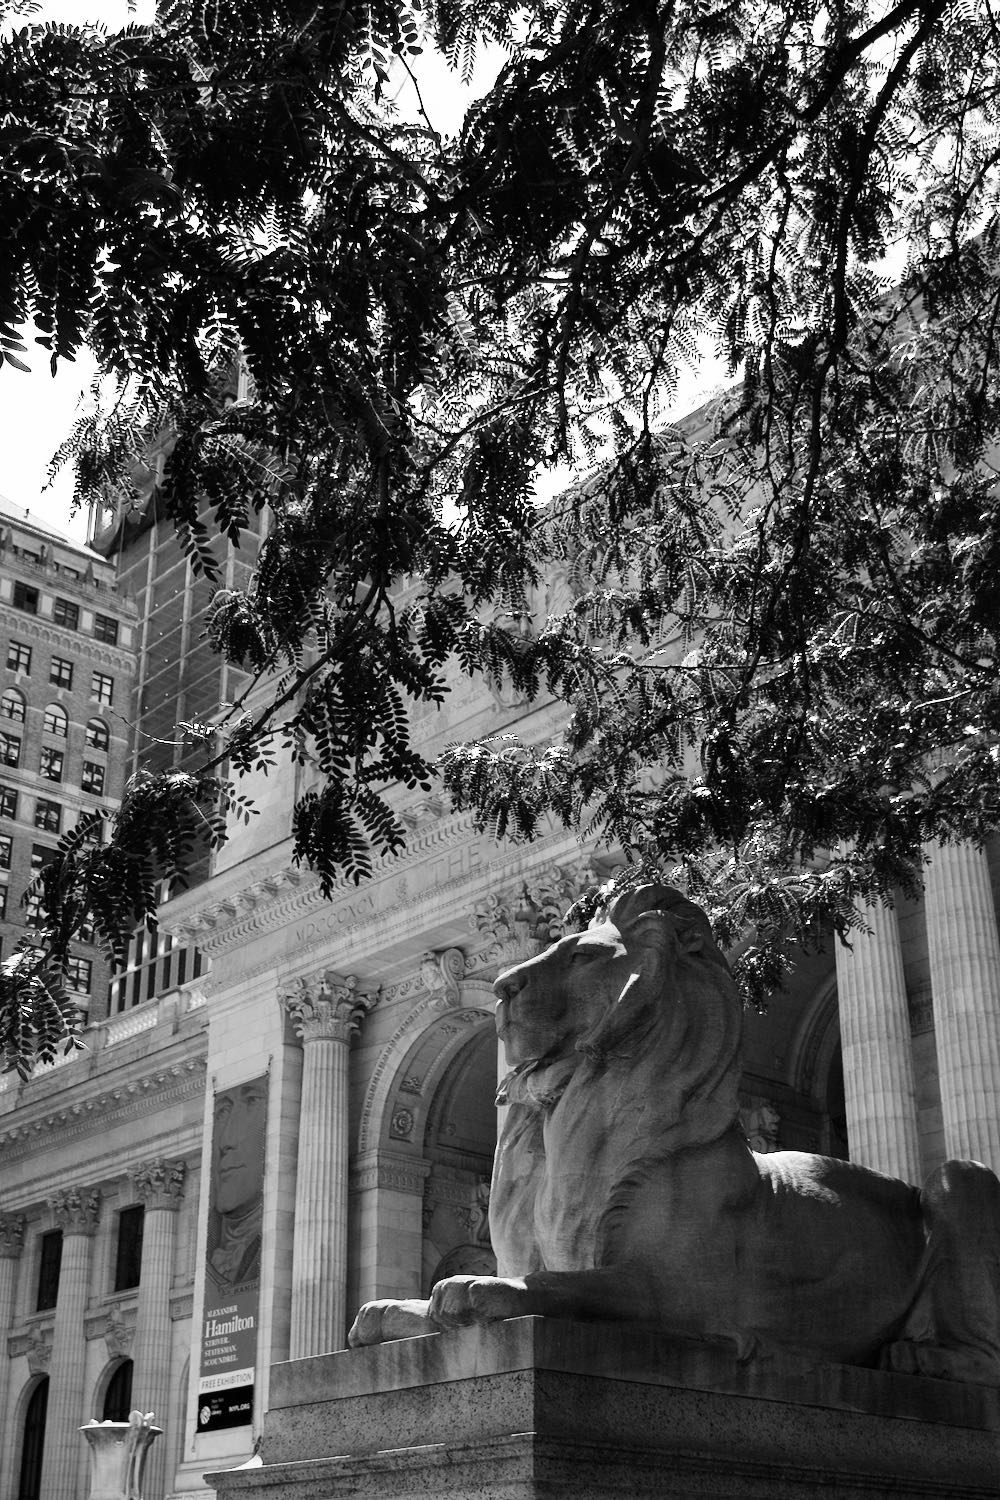 New York City public library in black and white